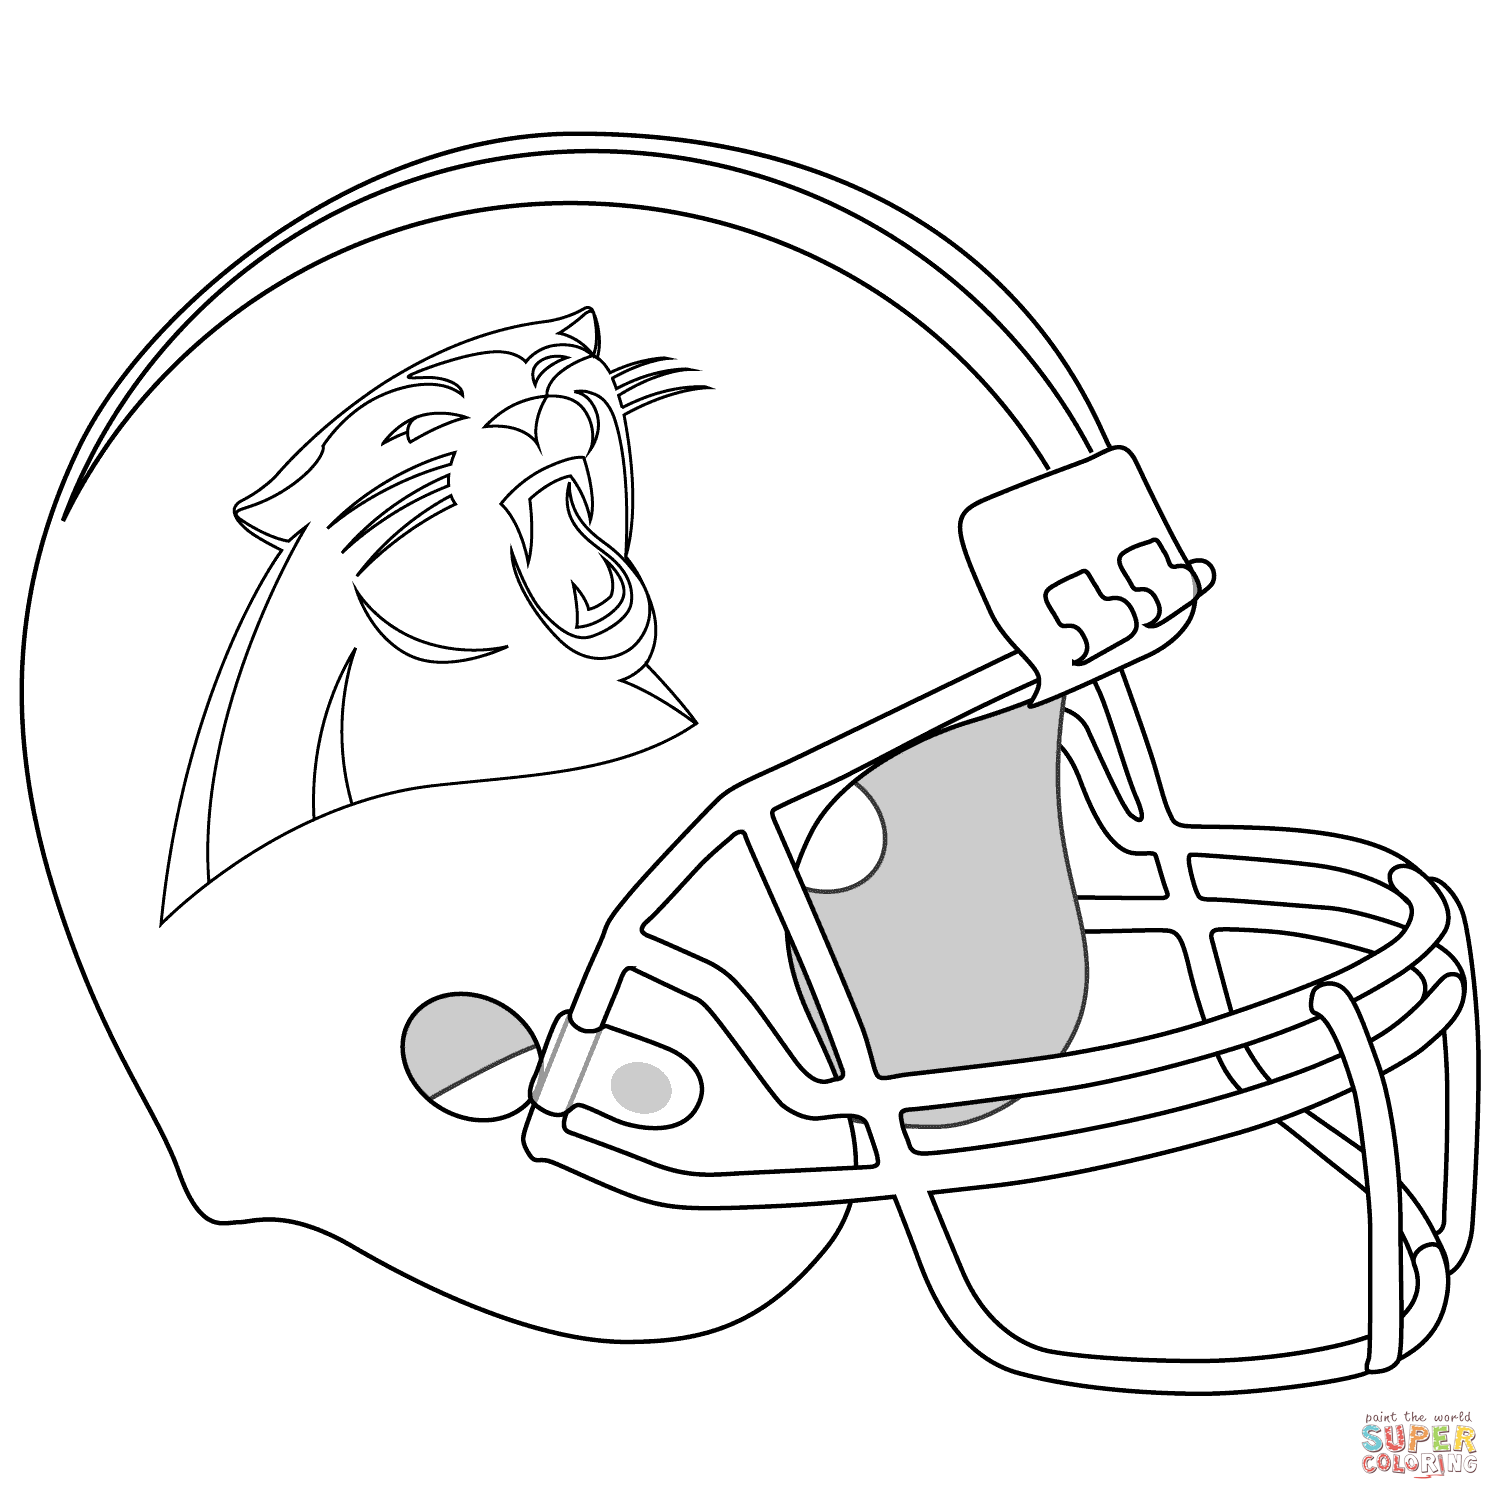 panther coloring pages - photo#7